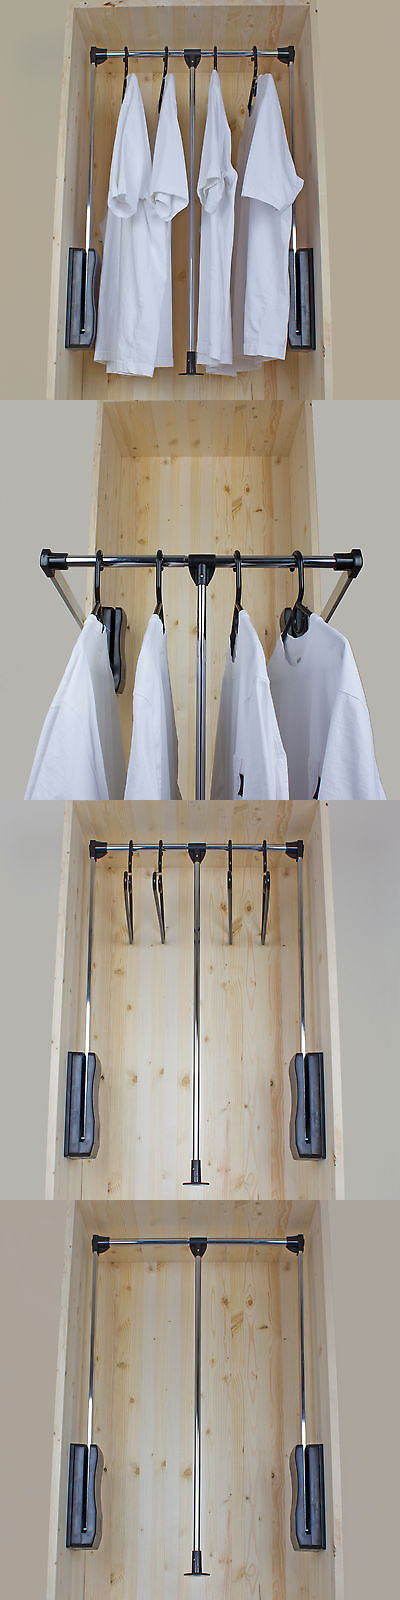 Good Closet Organizers 43503: Gliderite Hardware Pull Down Wardrobe Lift Closet  Rod System  U003e